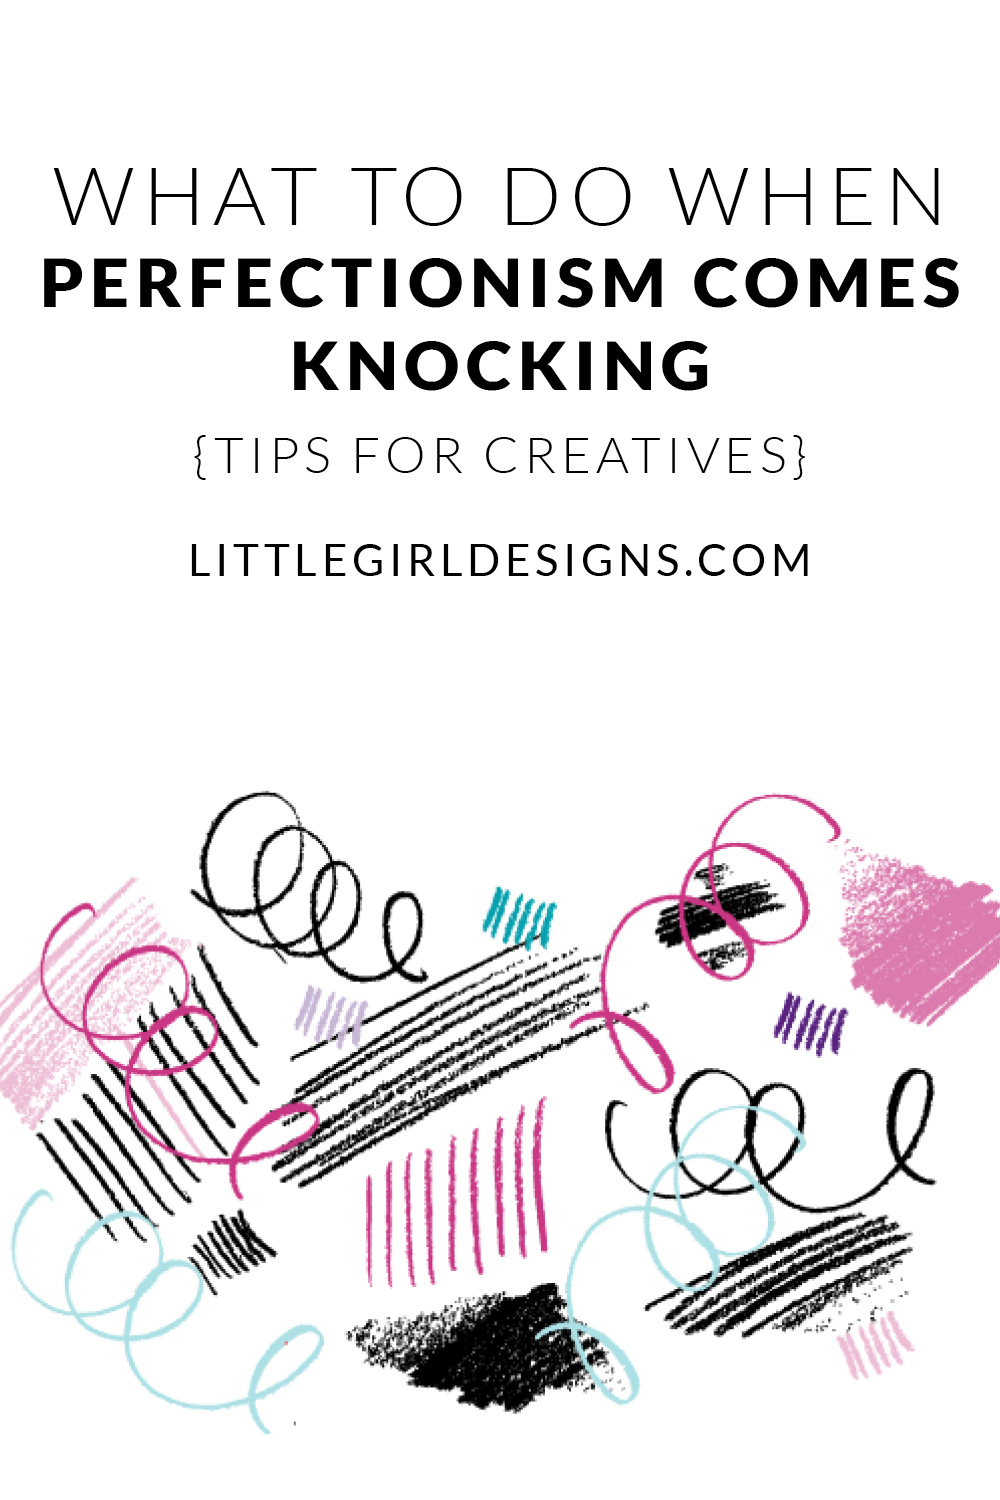 Ah, perfectionism. It's the bane of creatives, right? It's something most (if not all) of us have to deal with, so how do we get past it so we can get down to the business of creating? Click through to read my thoughts (and some great insight from a reader!)